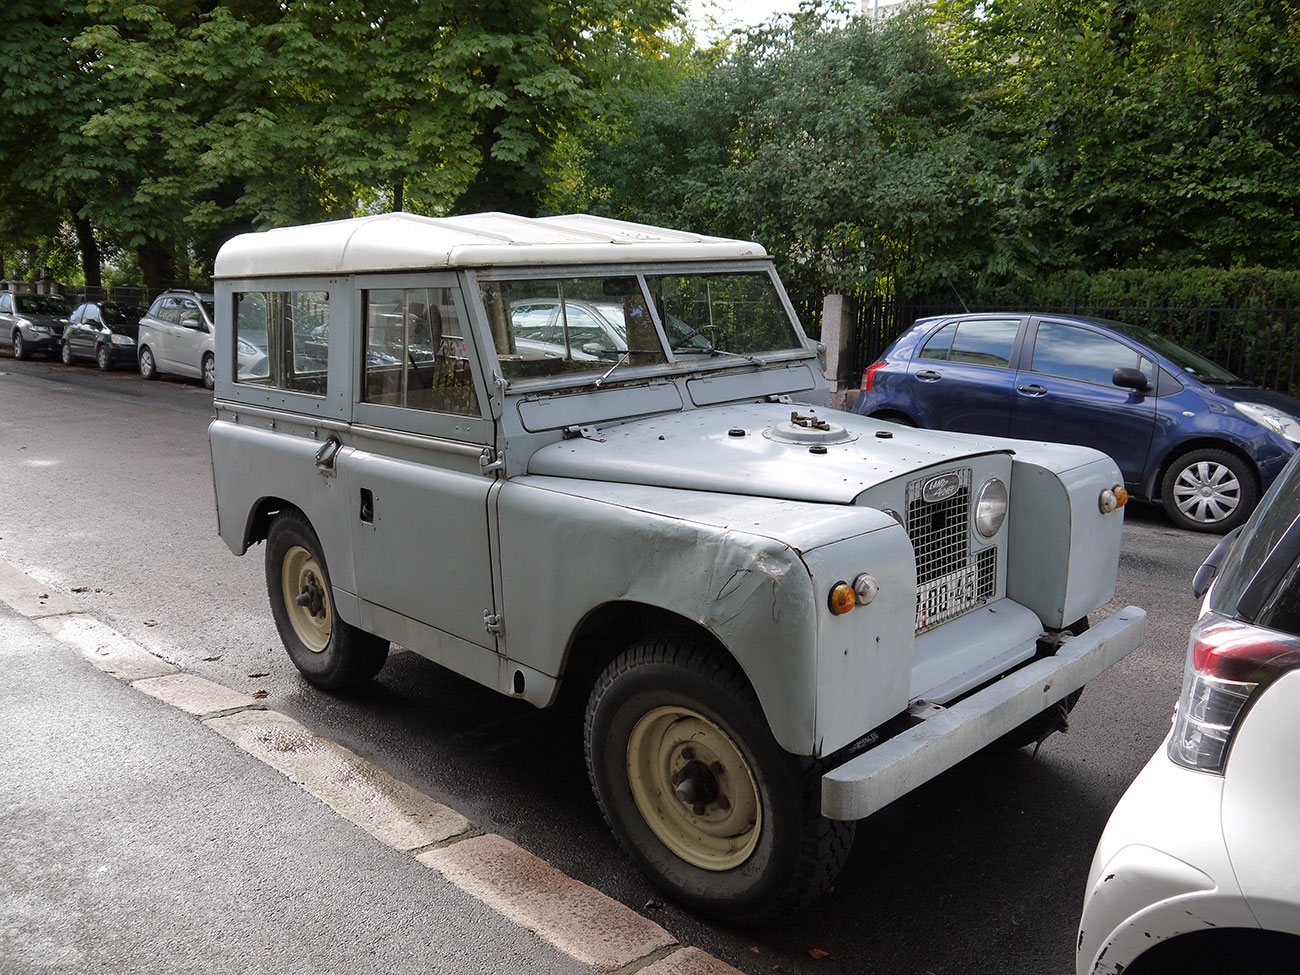 1968 Land Rover Series IIA 88 two door